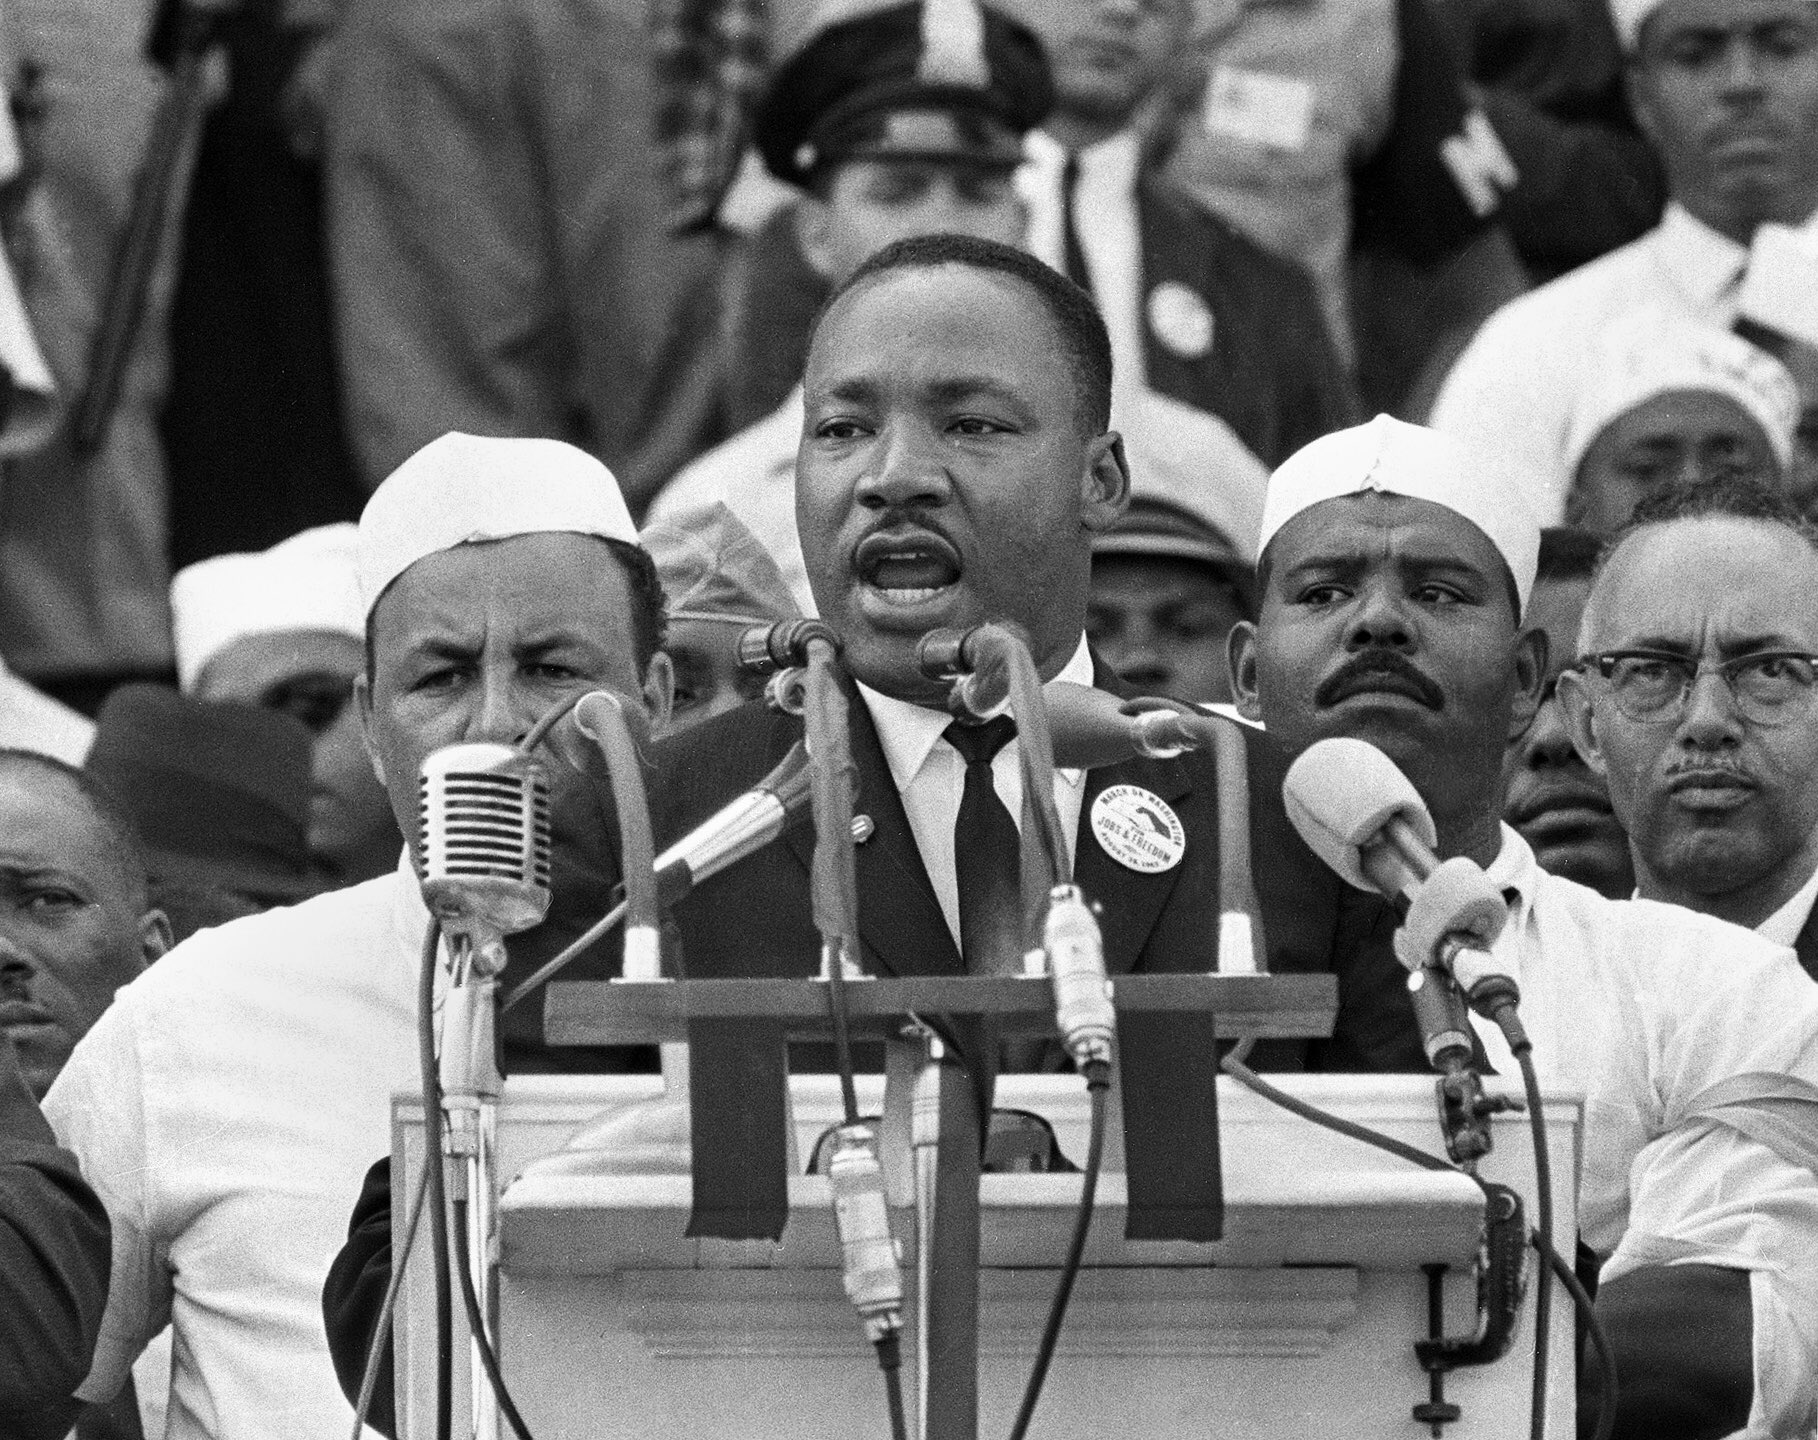 Today we honor the life and legacy of Dr. Martin Luther King Jr. #MLKDay https://t.co/3fLJVFMhok